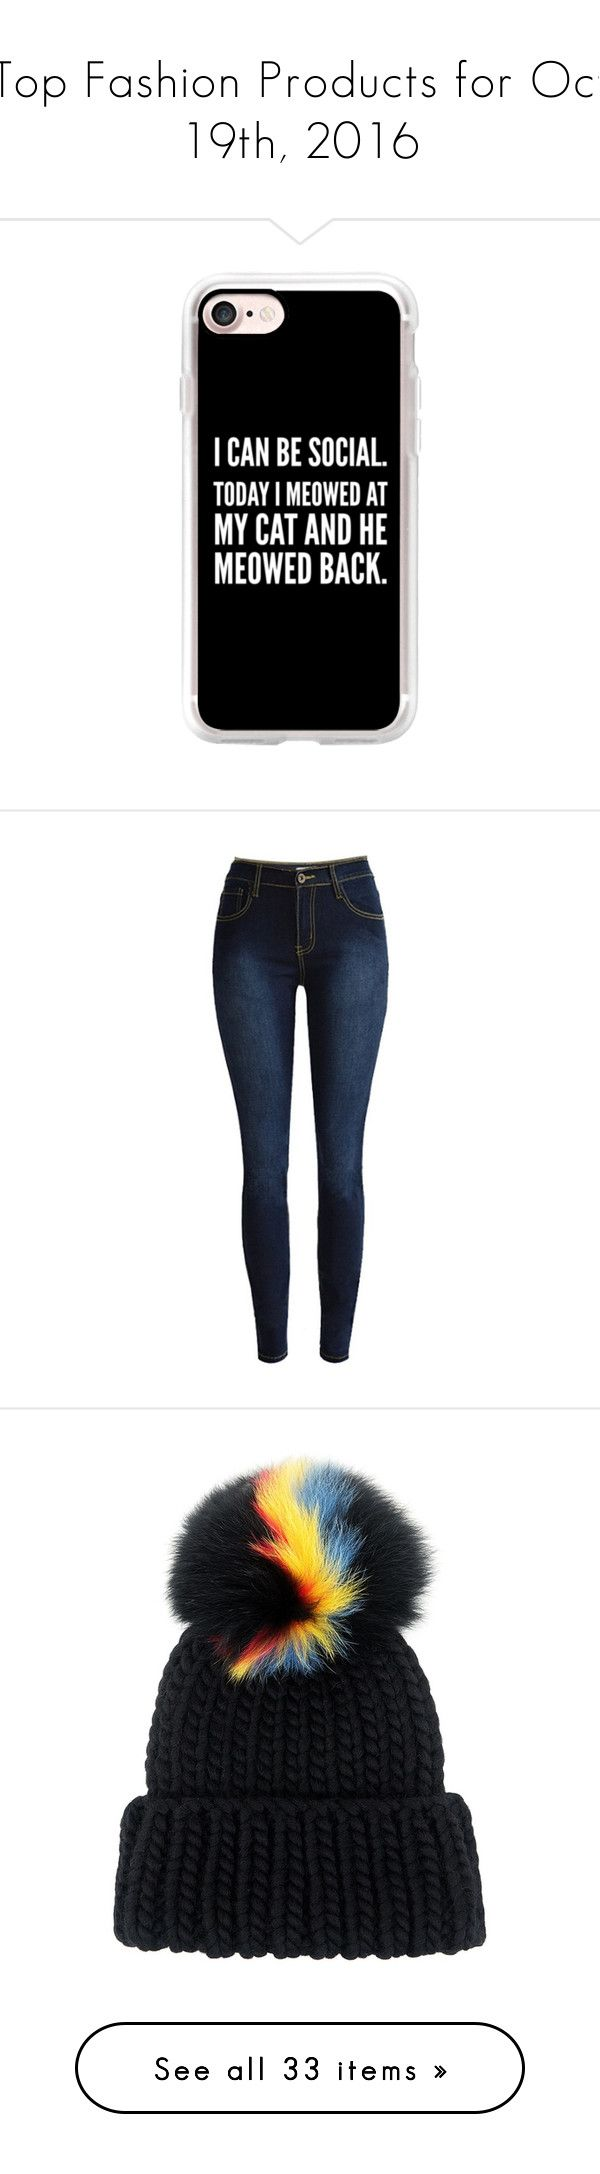 """""""Top Fashion Products for Oct 19th, 2016"""" by polyvore ❤ liked on Polyvore featuring tops, sweaters, shirts, blue, rounded collar shirt, blue top, lightweight long sleeve shirt, lightweight sweaters, logo shirts and accessories"""